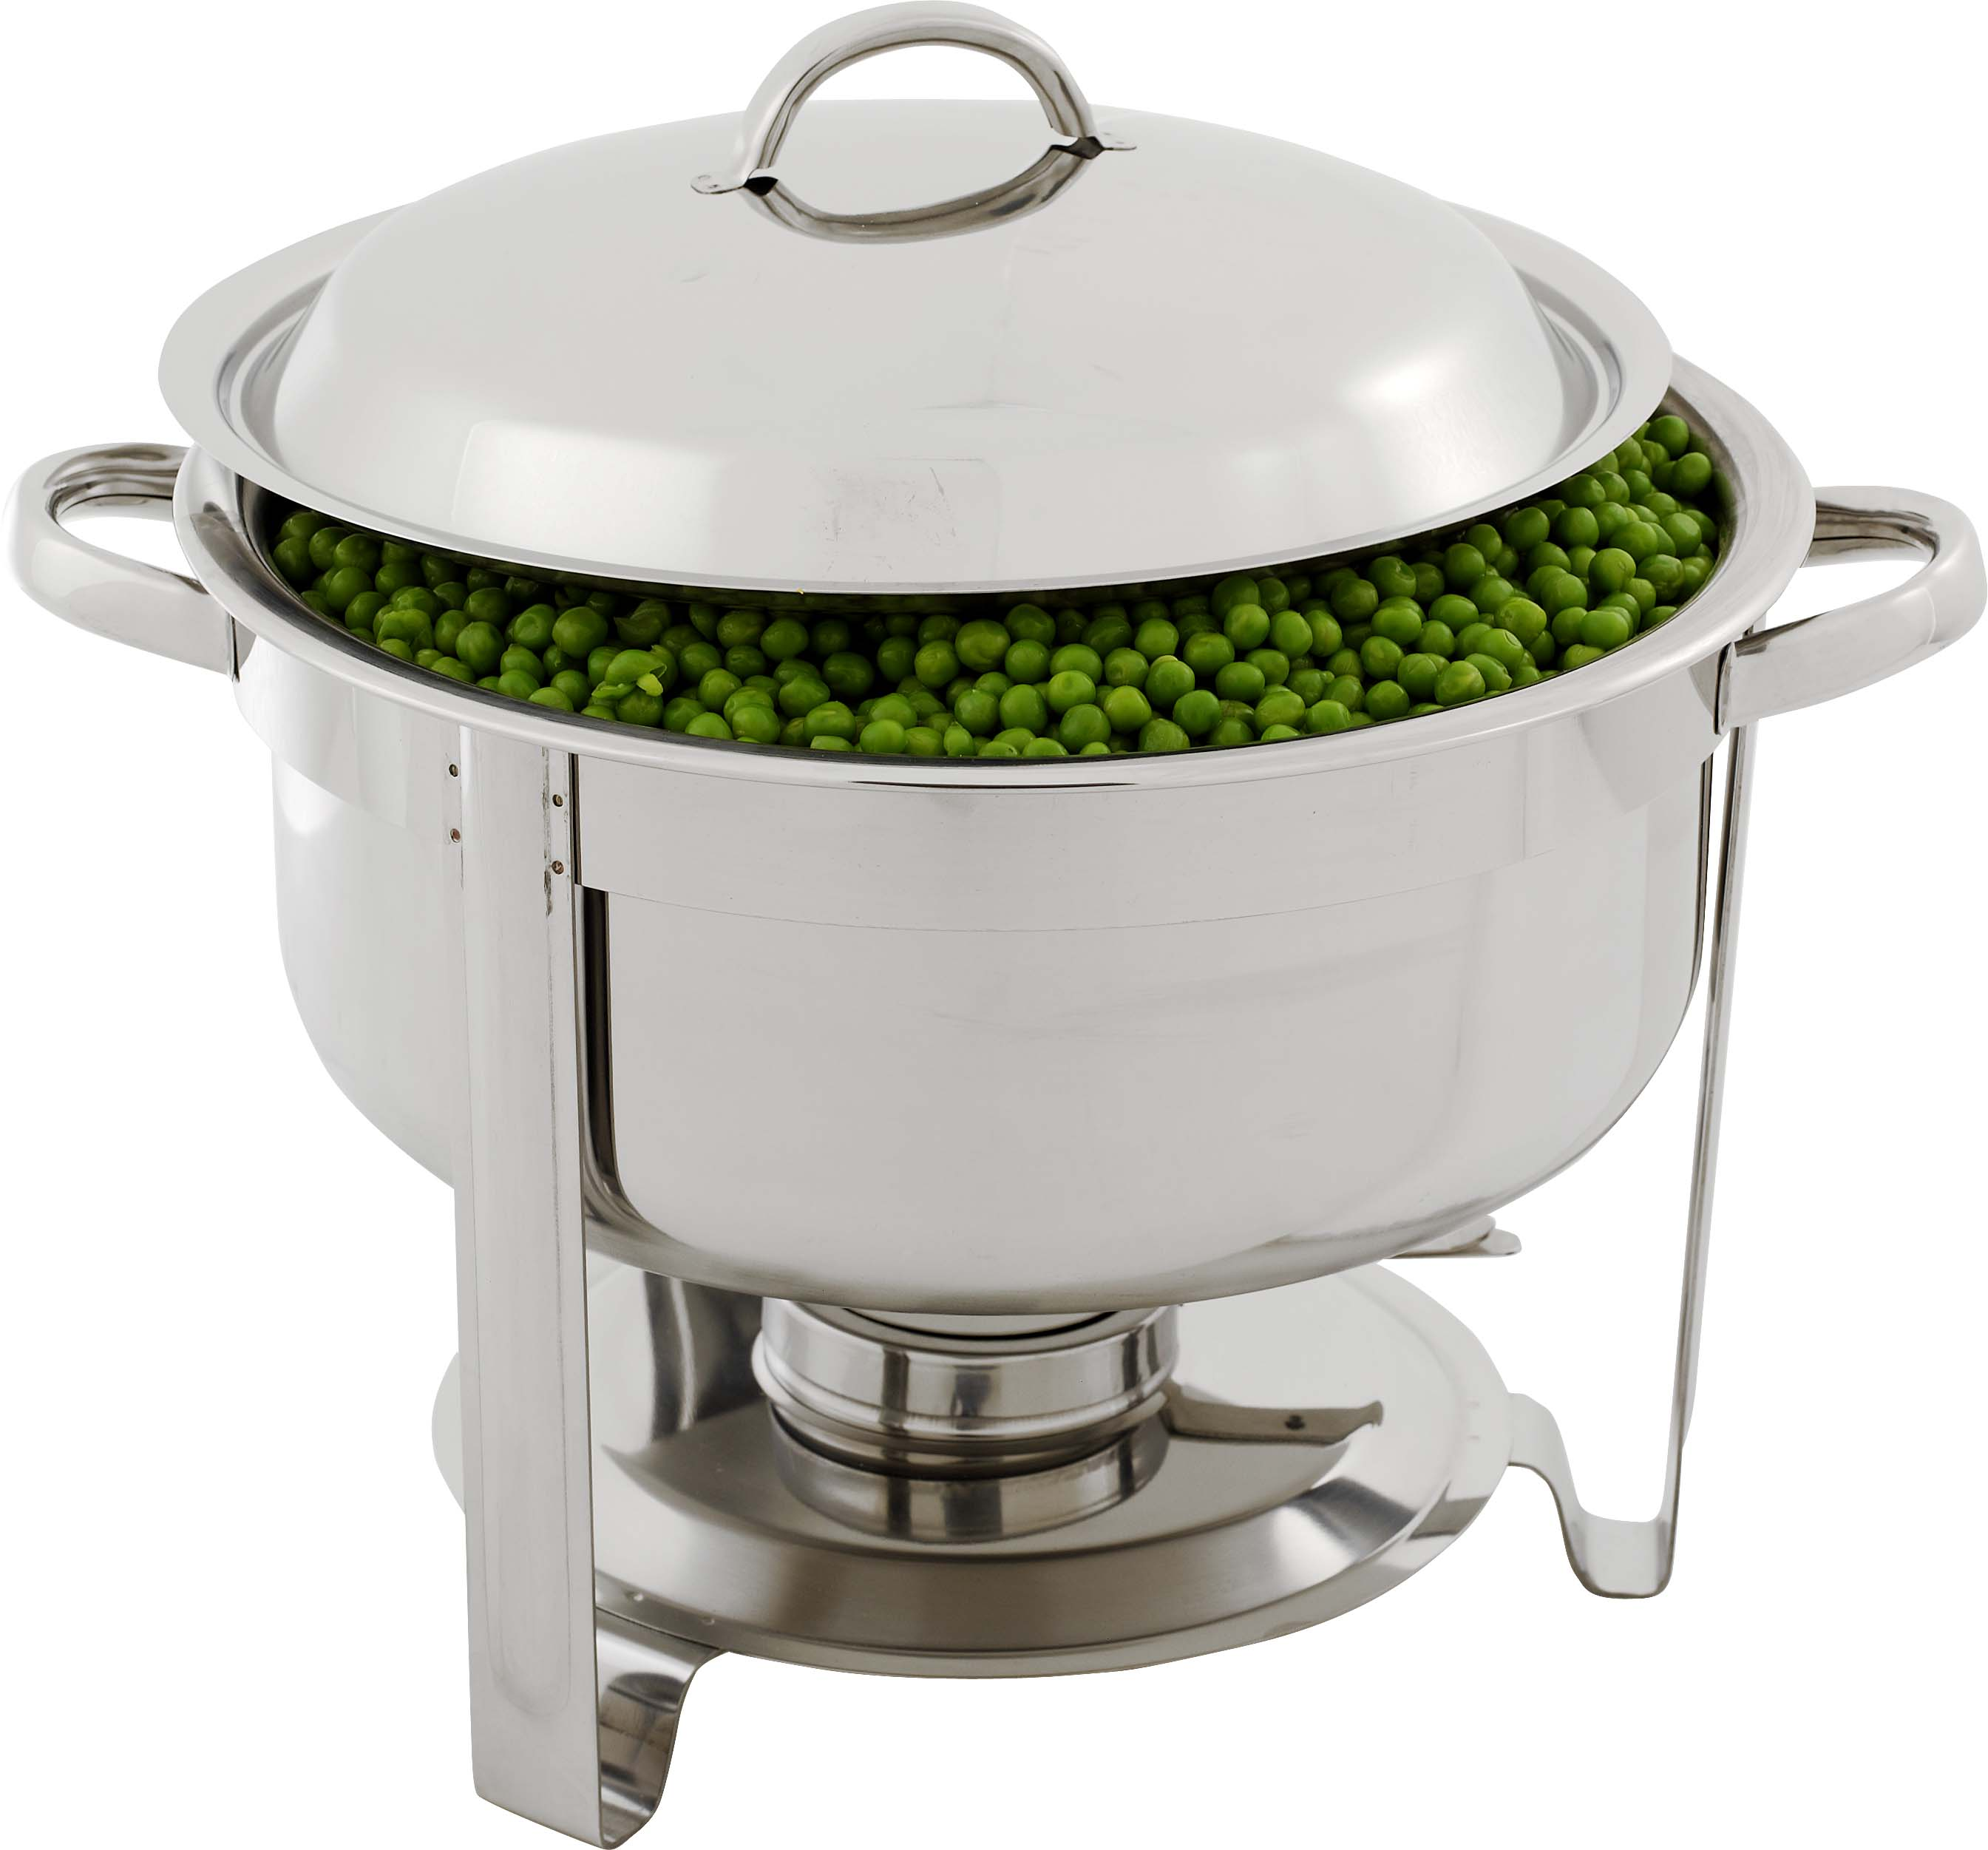 CHAFING DISH S/STEEL-POLISHED ROUND 6.8Lt